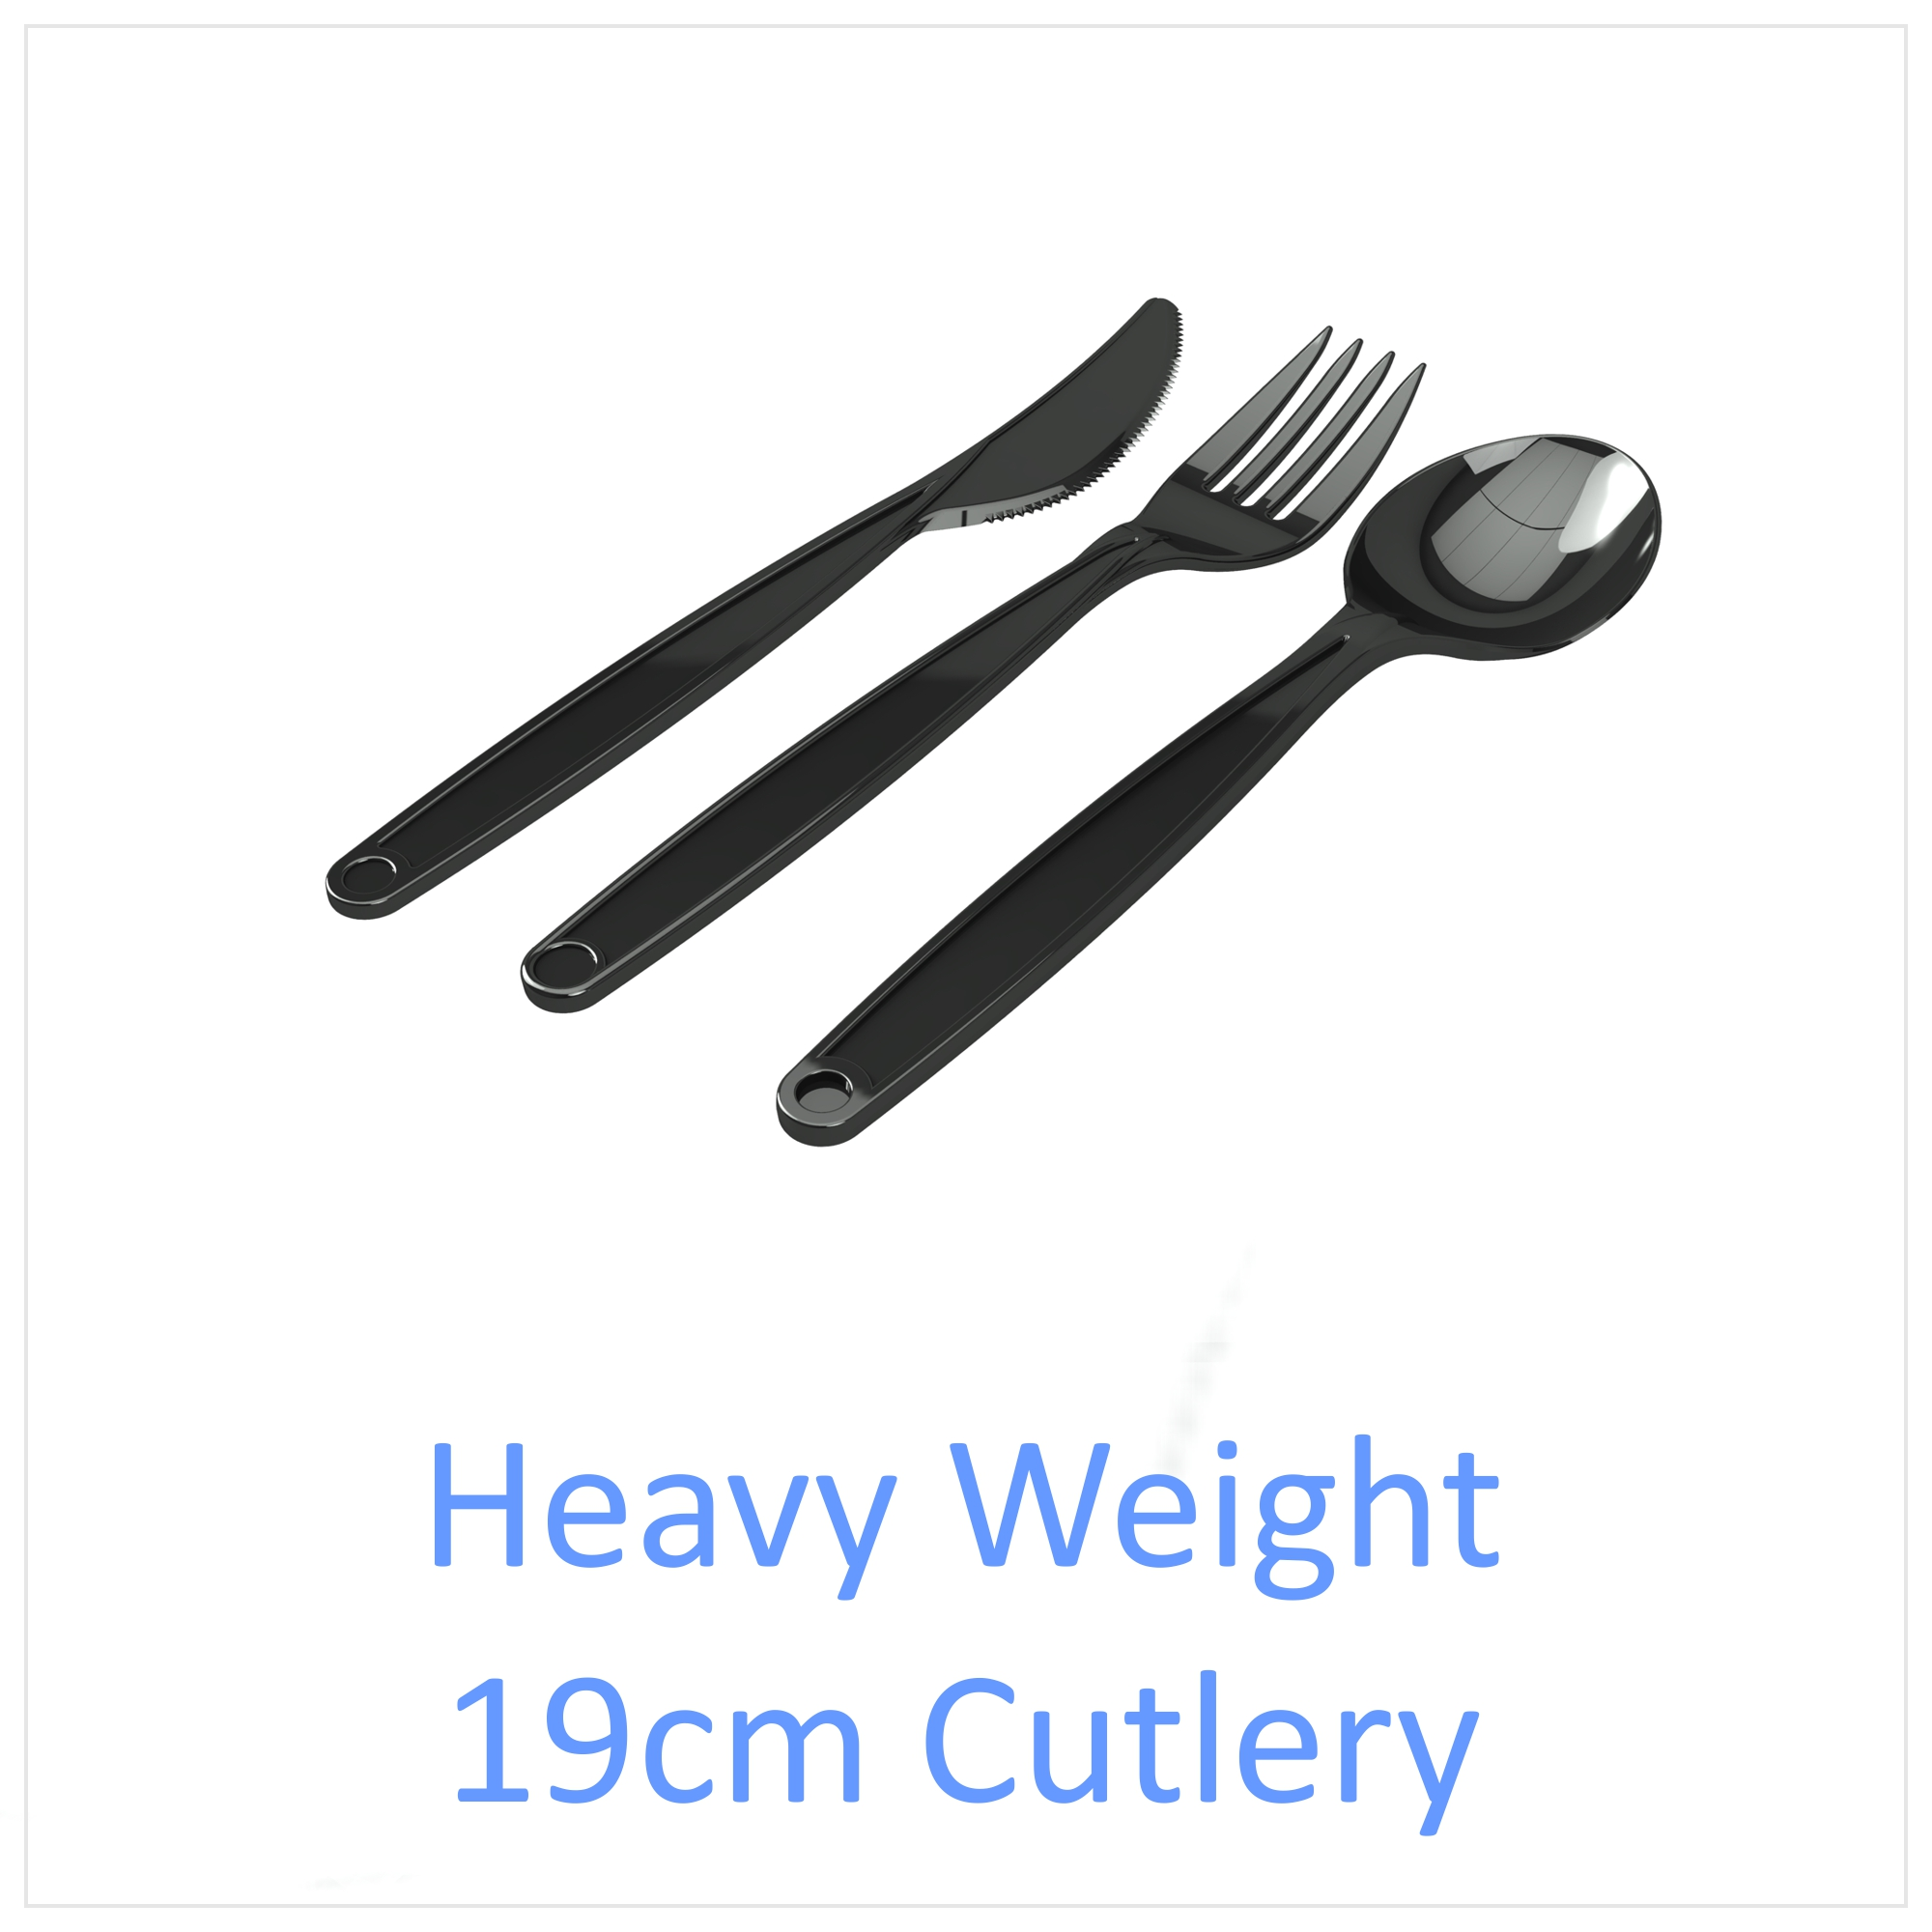 Heavy Weight Cutlery